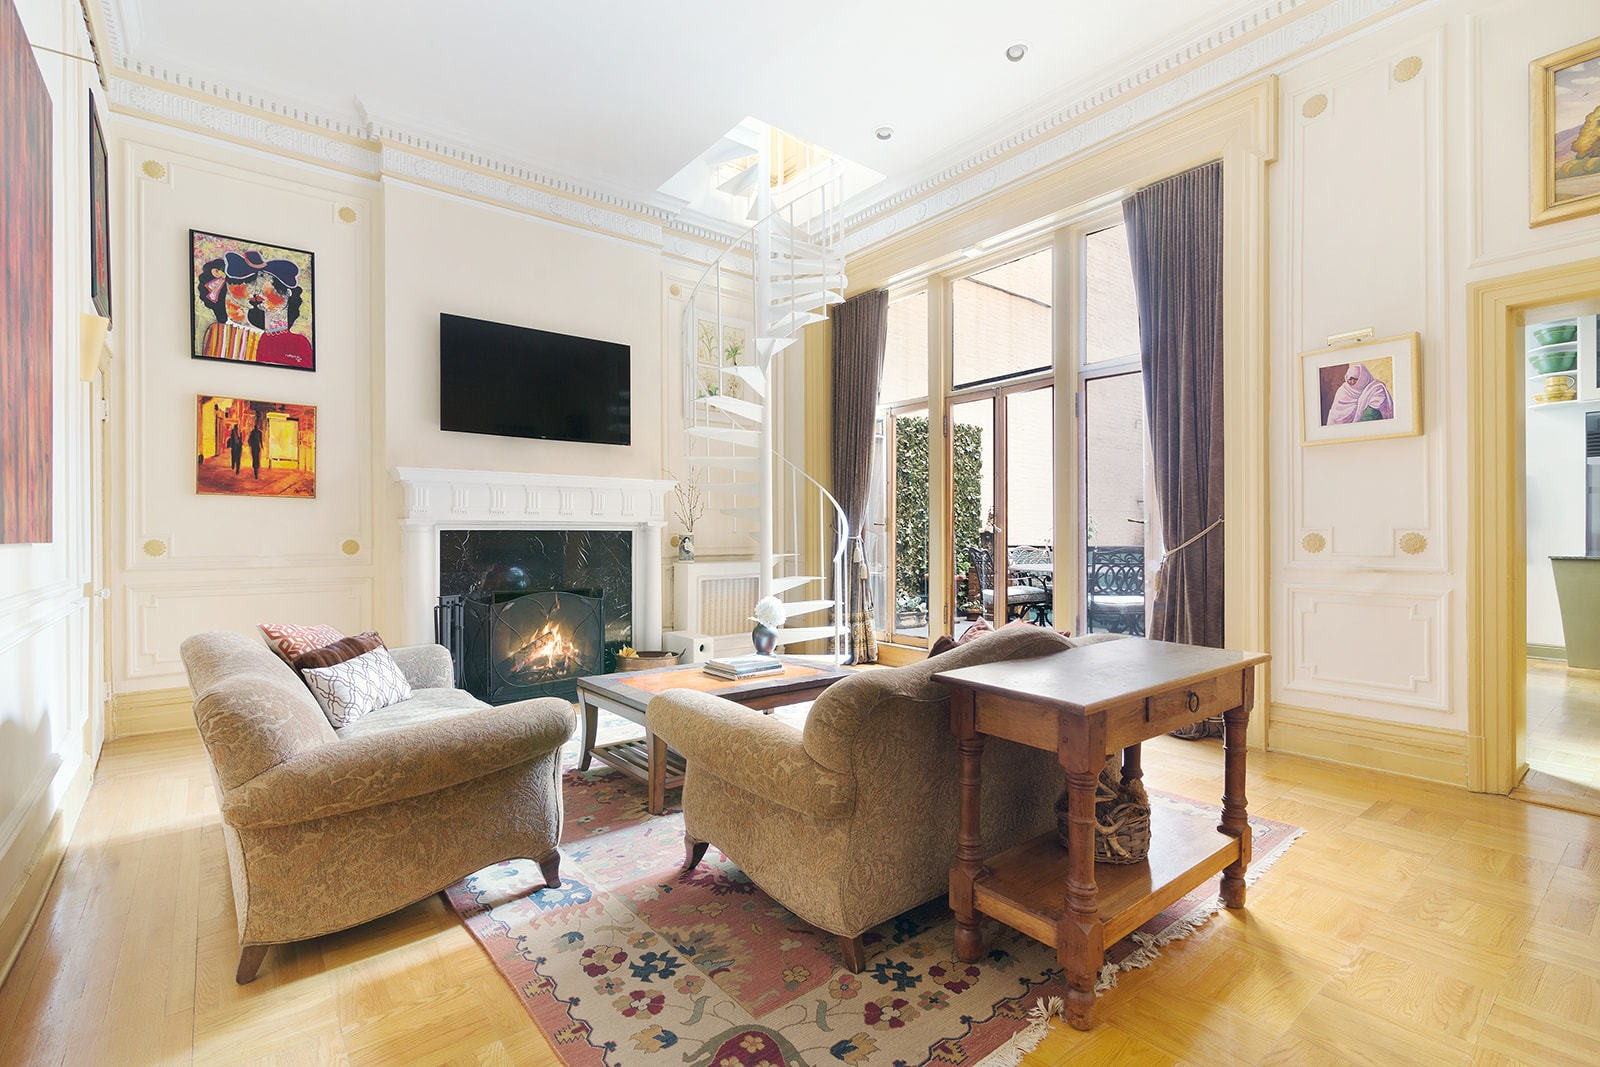 34 east 38th street, parlor a luxury co-op property for sale in midtown south new york, new york property id 2888391 christie s international real estate